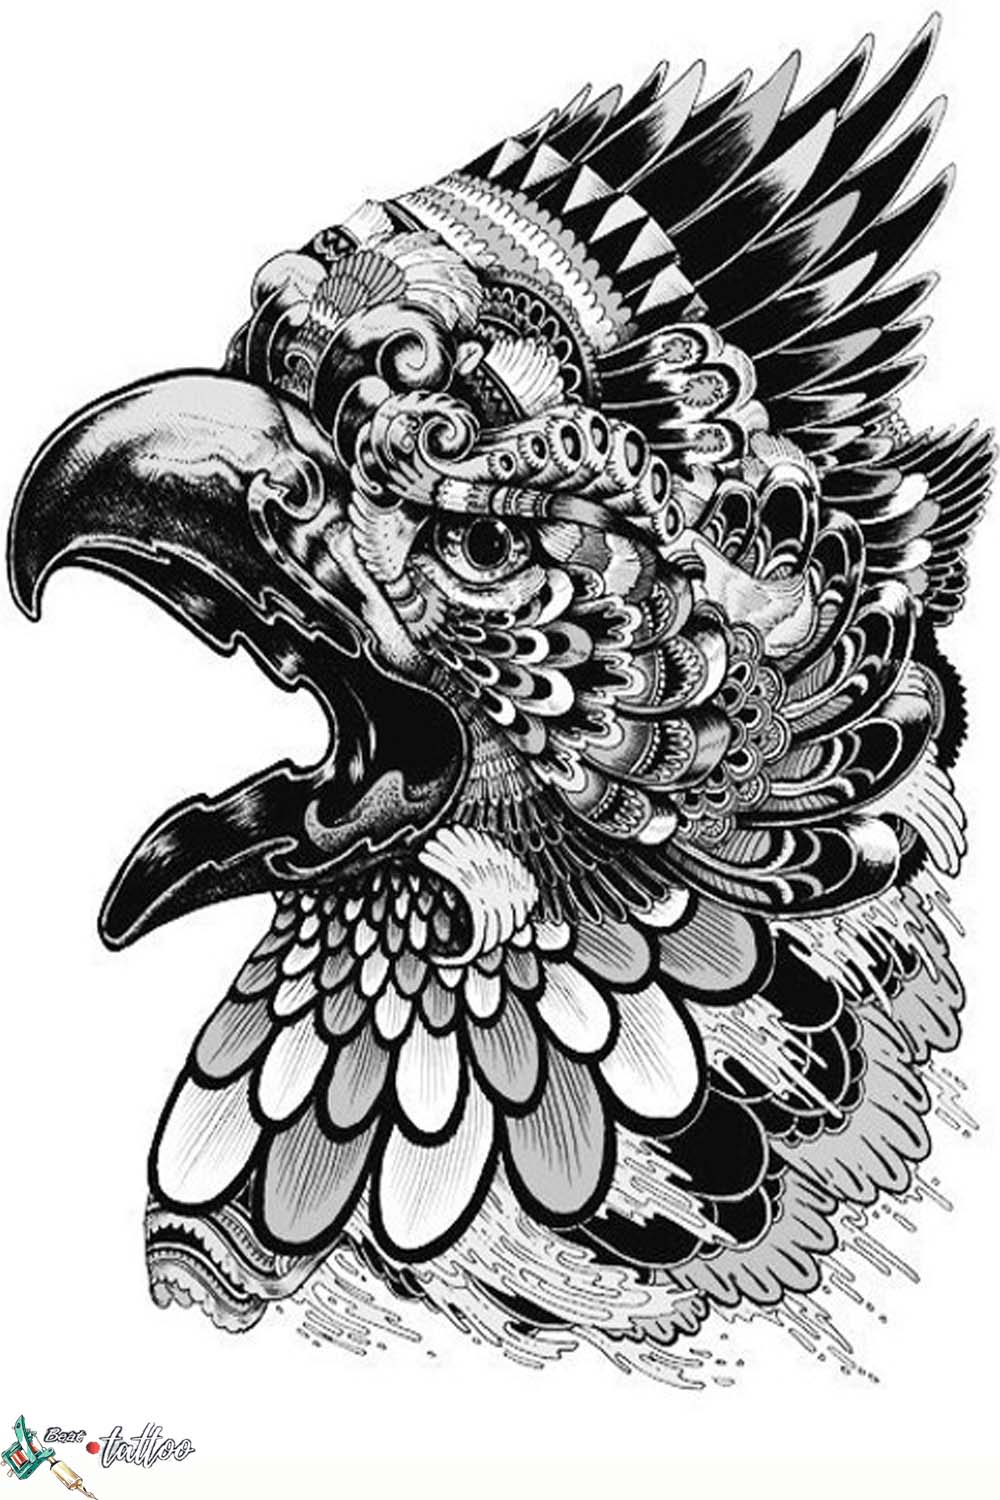 Sketch for tattoo - Griffin